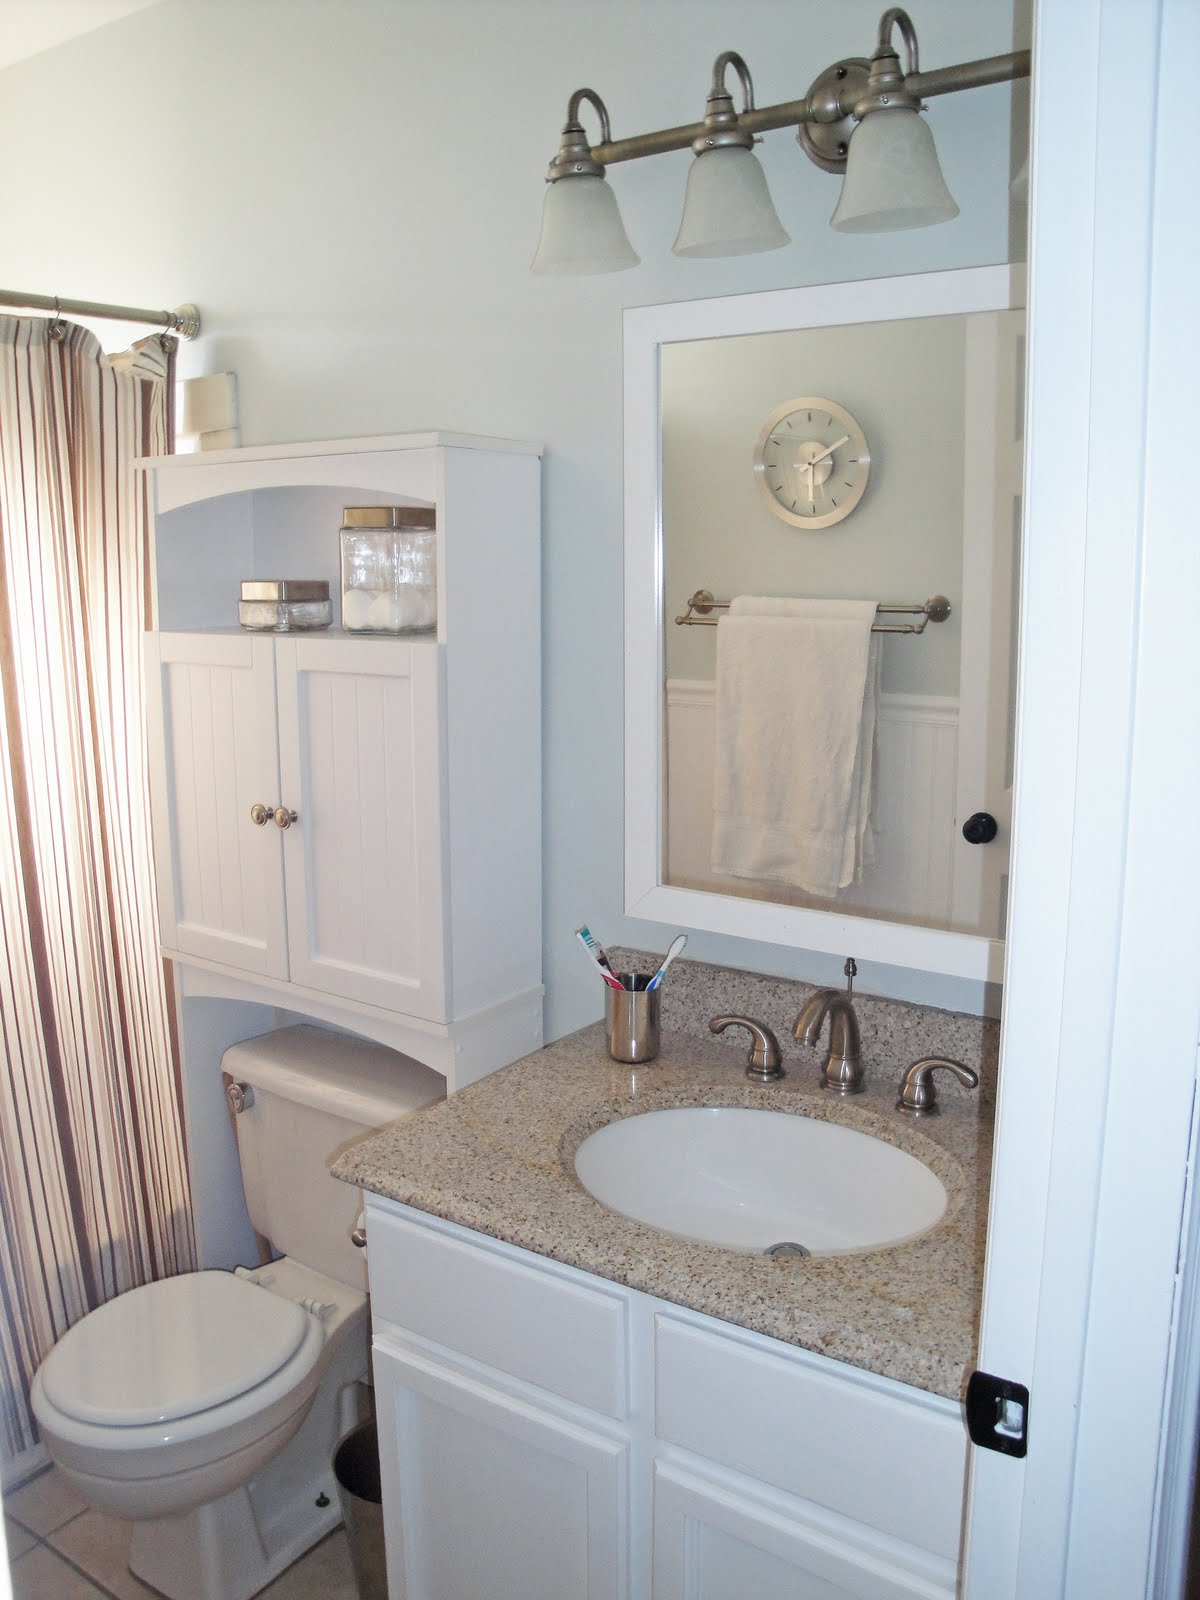 Awesome 10 Amazing Over The Toilet Storage Ideas For Small Bathrooms